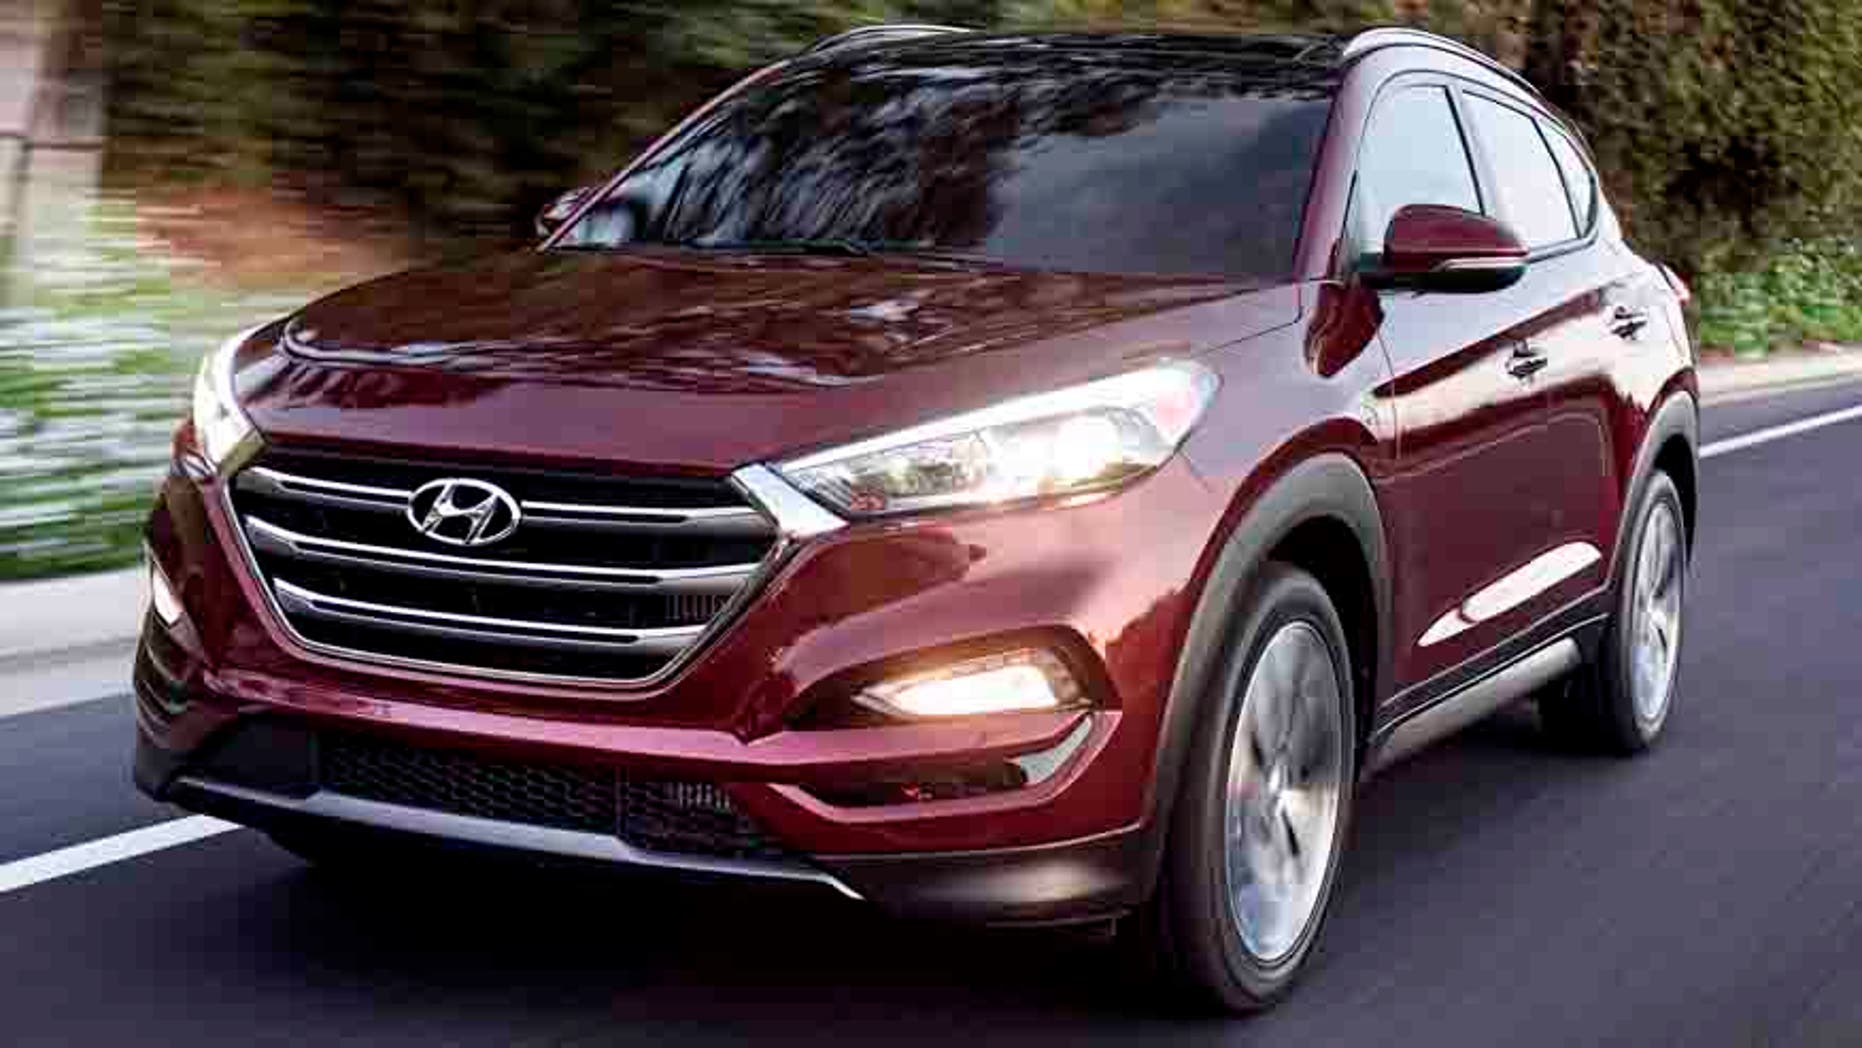 FILE - This photo provided by Hyundai Motor America shows the 2016 Hyundai Tucson.  Small SUVs did poorly in new headlight tests performed by the insurance industry. The Insurance Institute for Highway Safety says none of the 21 small SUVs tested earned its highest ranking. The Ford Escape, Honda CR-V, Hyundai Tucson and Mazda CX-3 performed best, but more than half the SUVs tested received the lowest ranking, including the Subaru Forester and the Audi Q3.(Morgan Segal/Hyundai Motor America via AP)